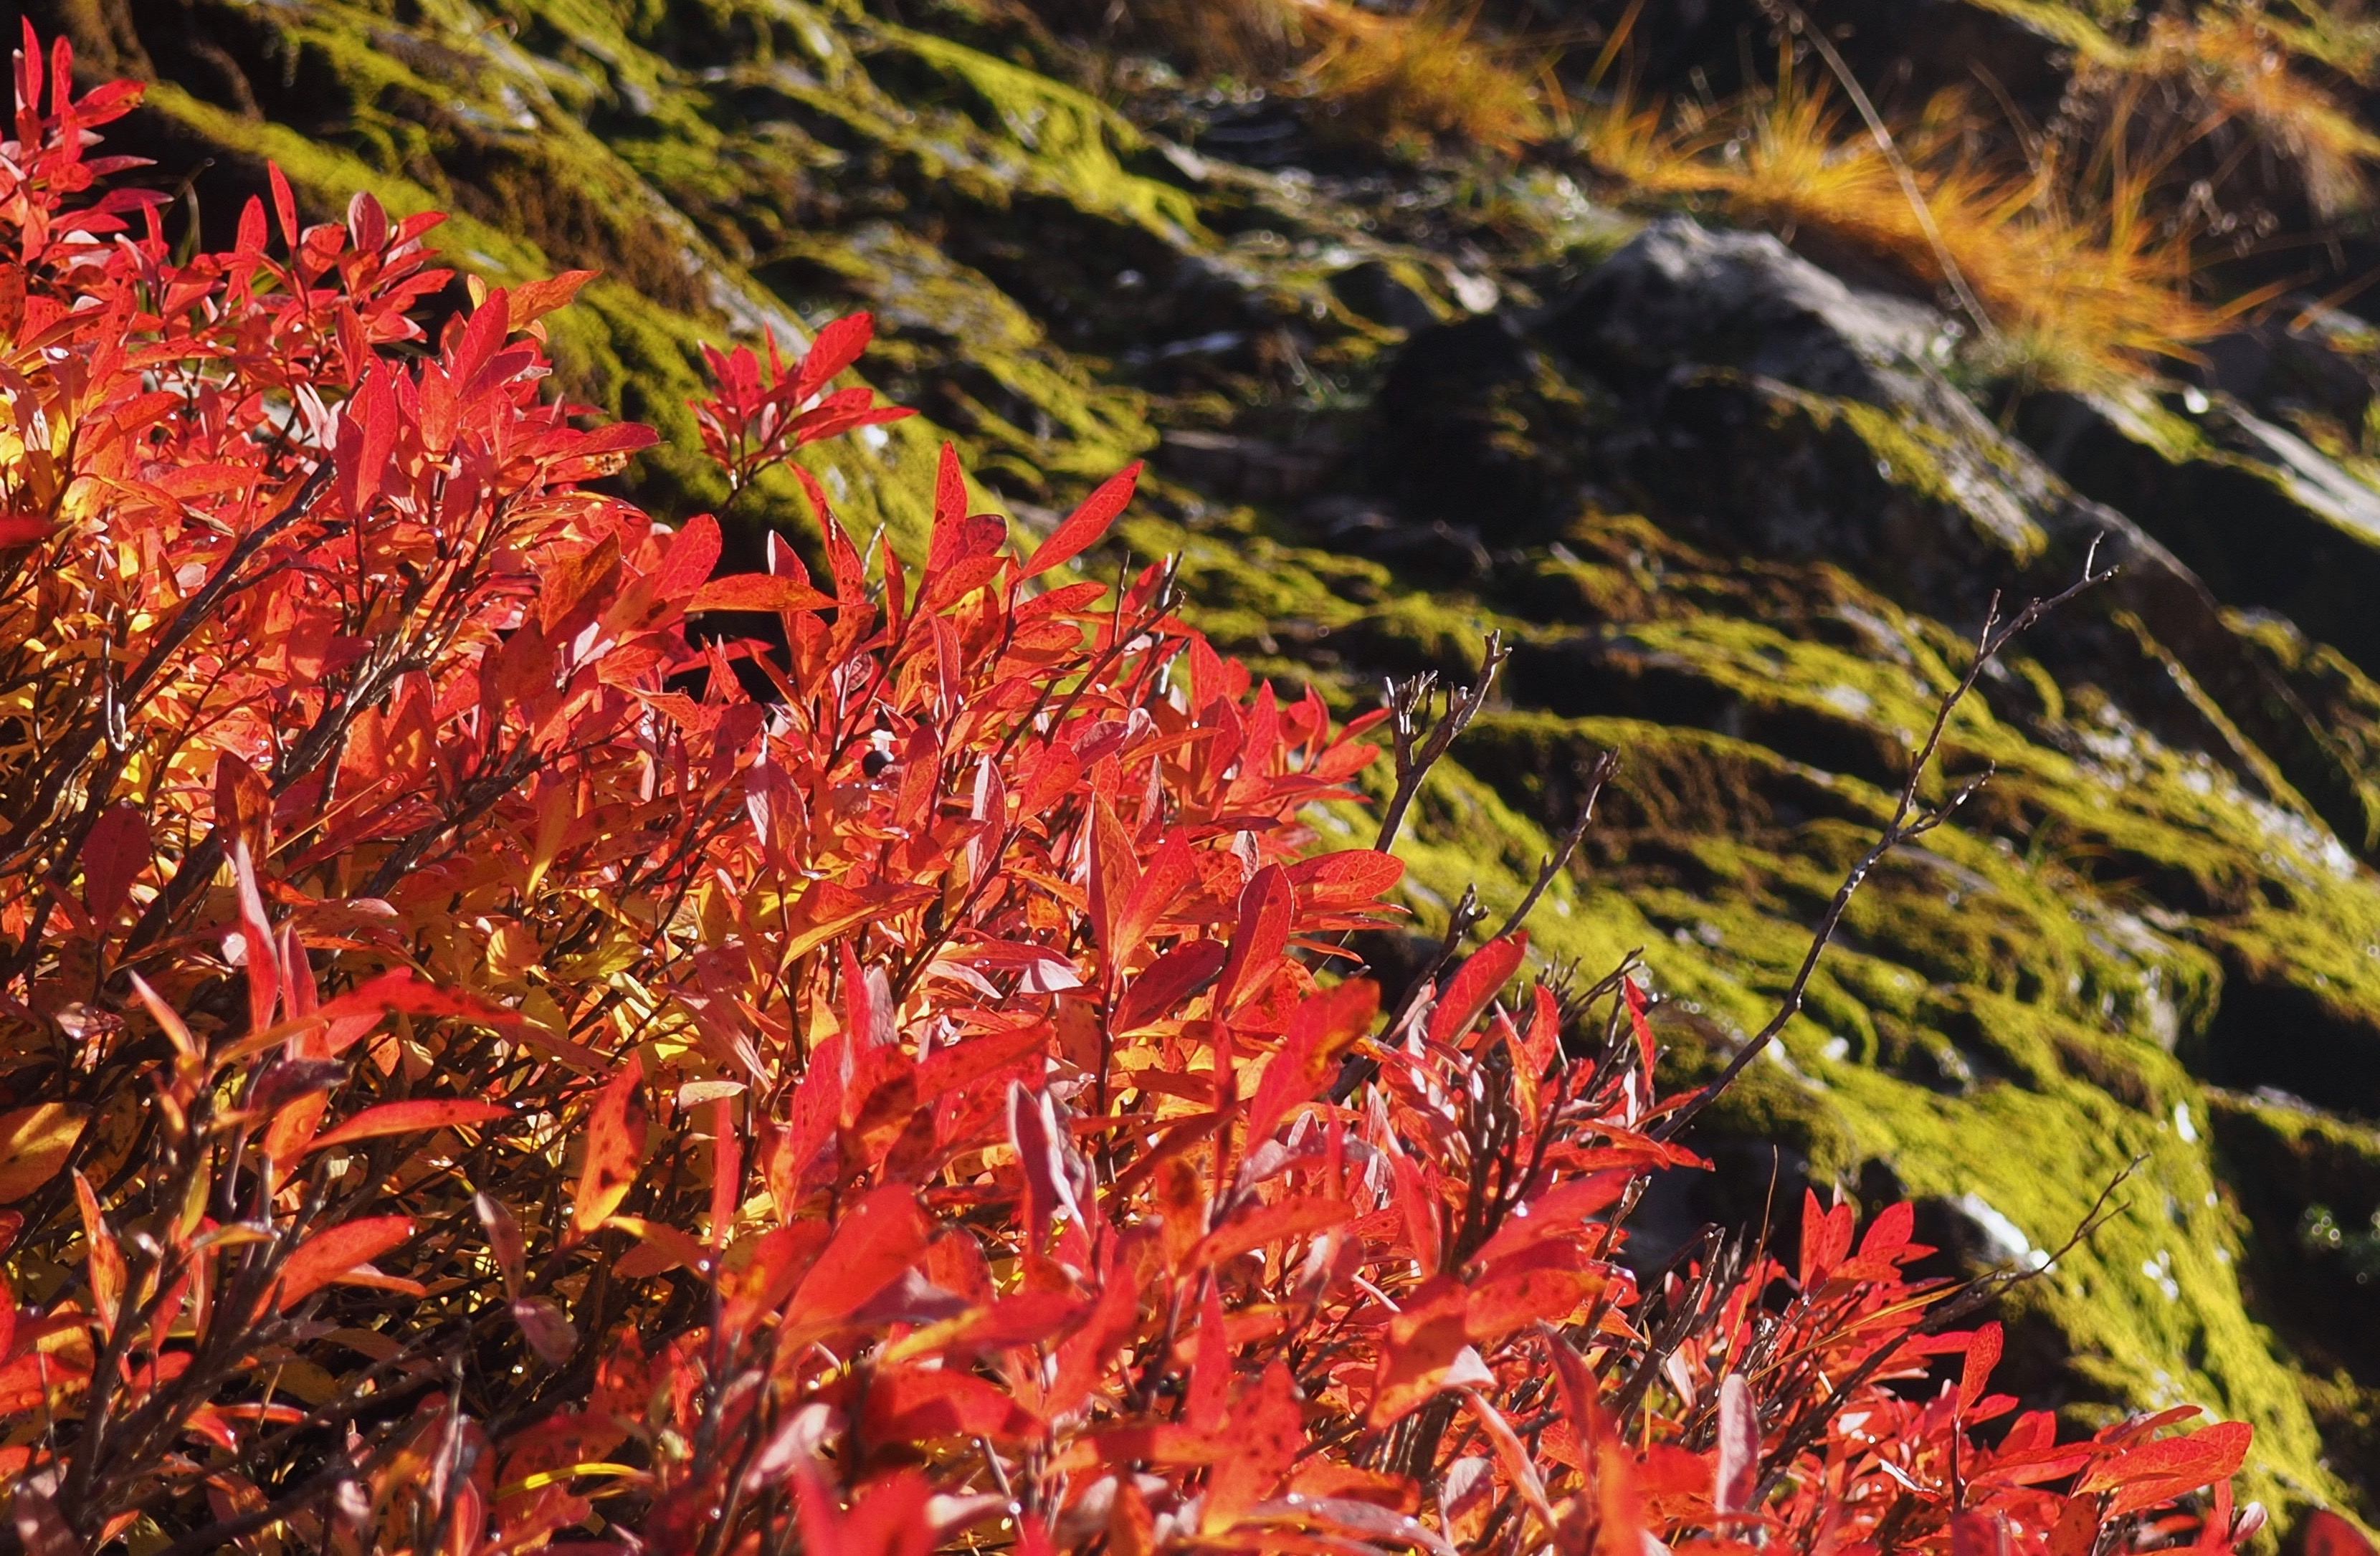 Near Red Pass, blueberries' (Vaccinium sp.) vibrant autumn leaves contrast with the trailside's mossy mountain folds. Commonwealth Basin – Red Pass Trail, October 22, 2016.